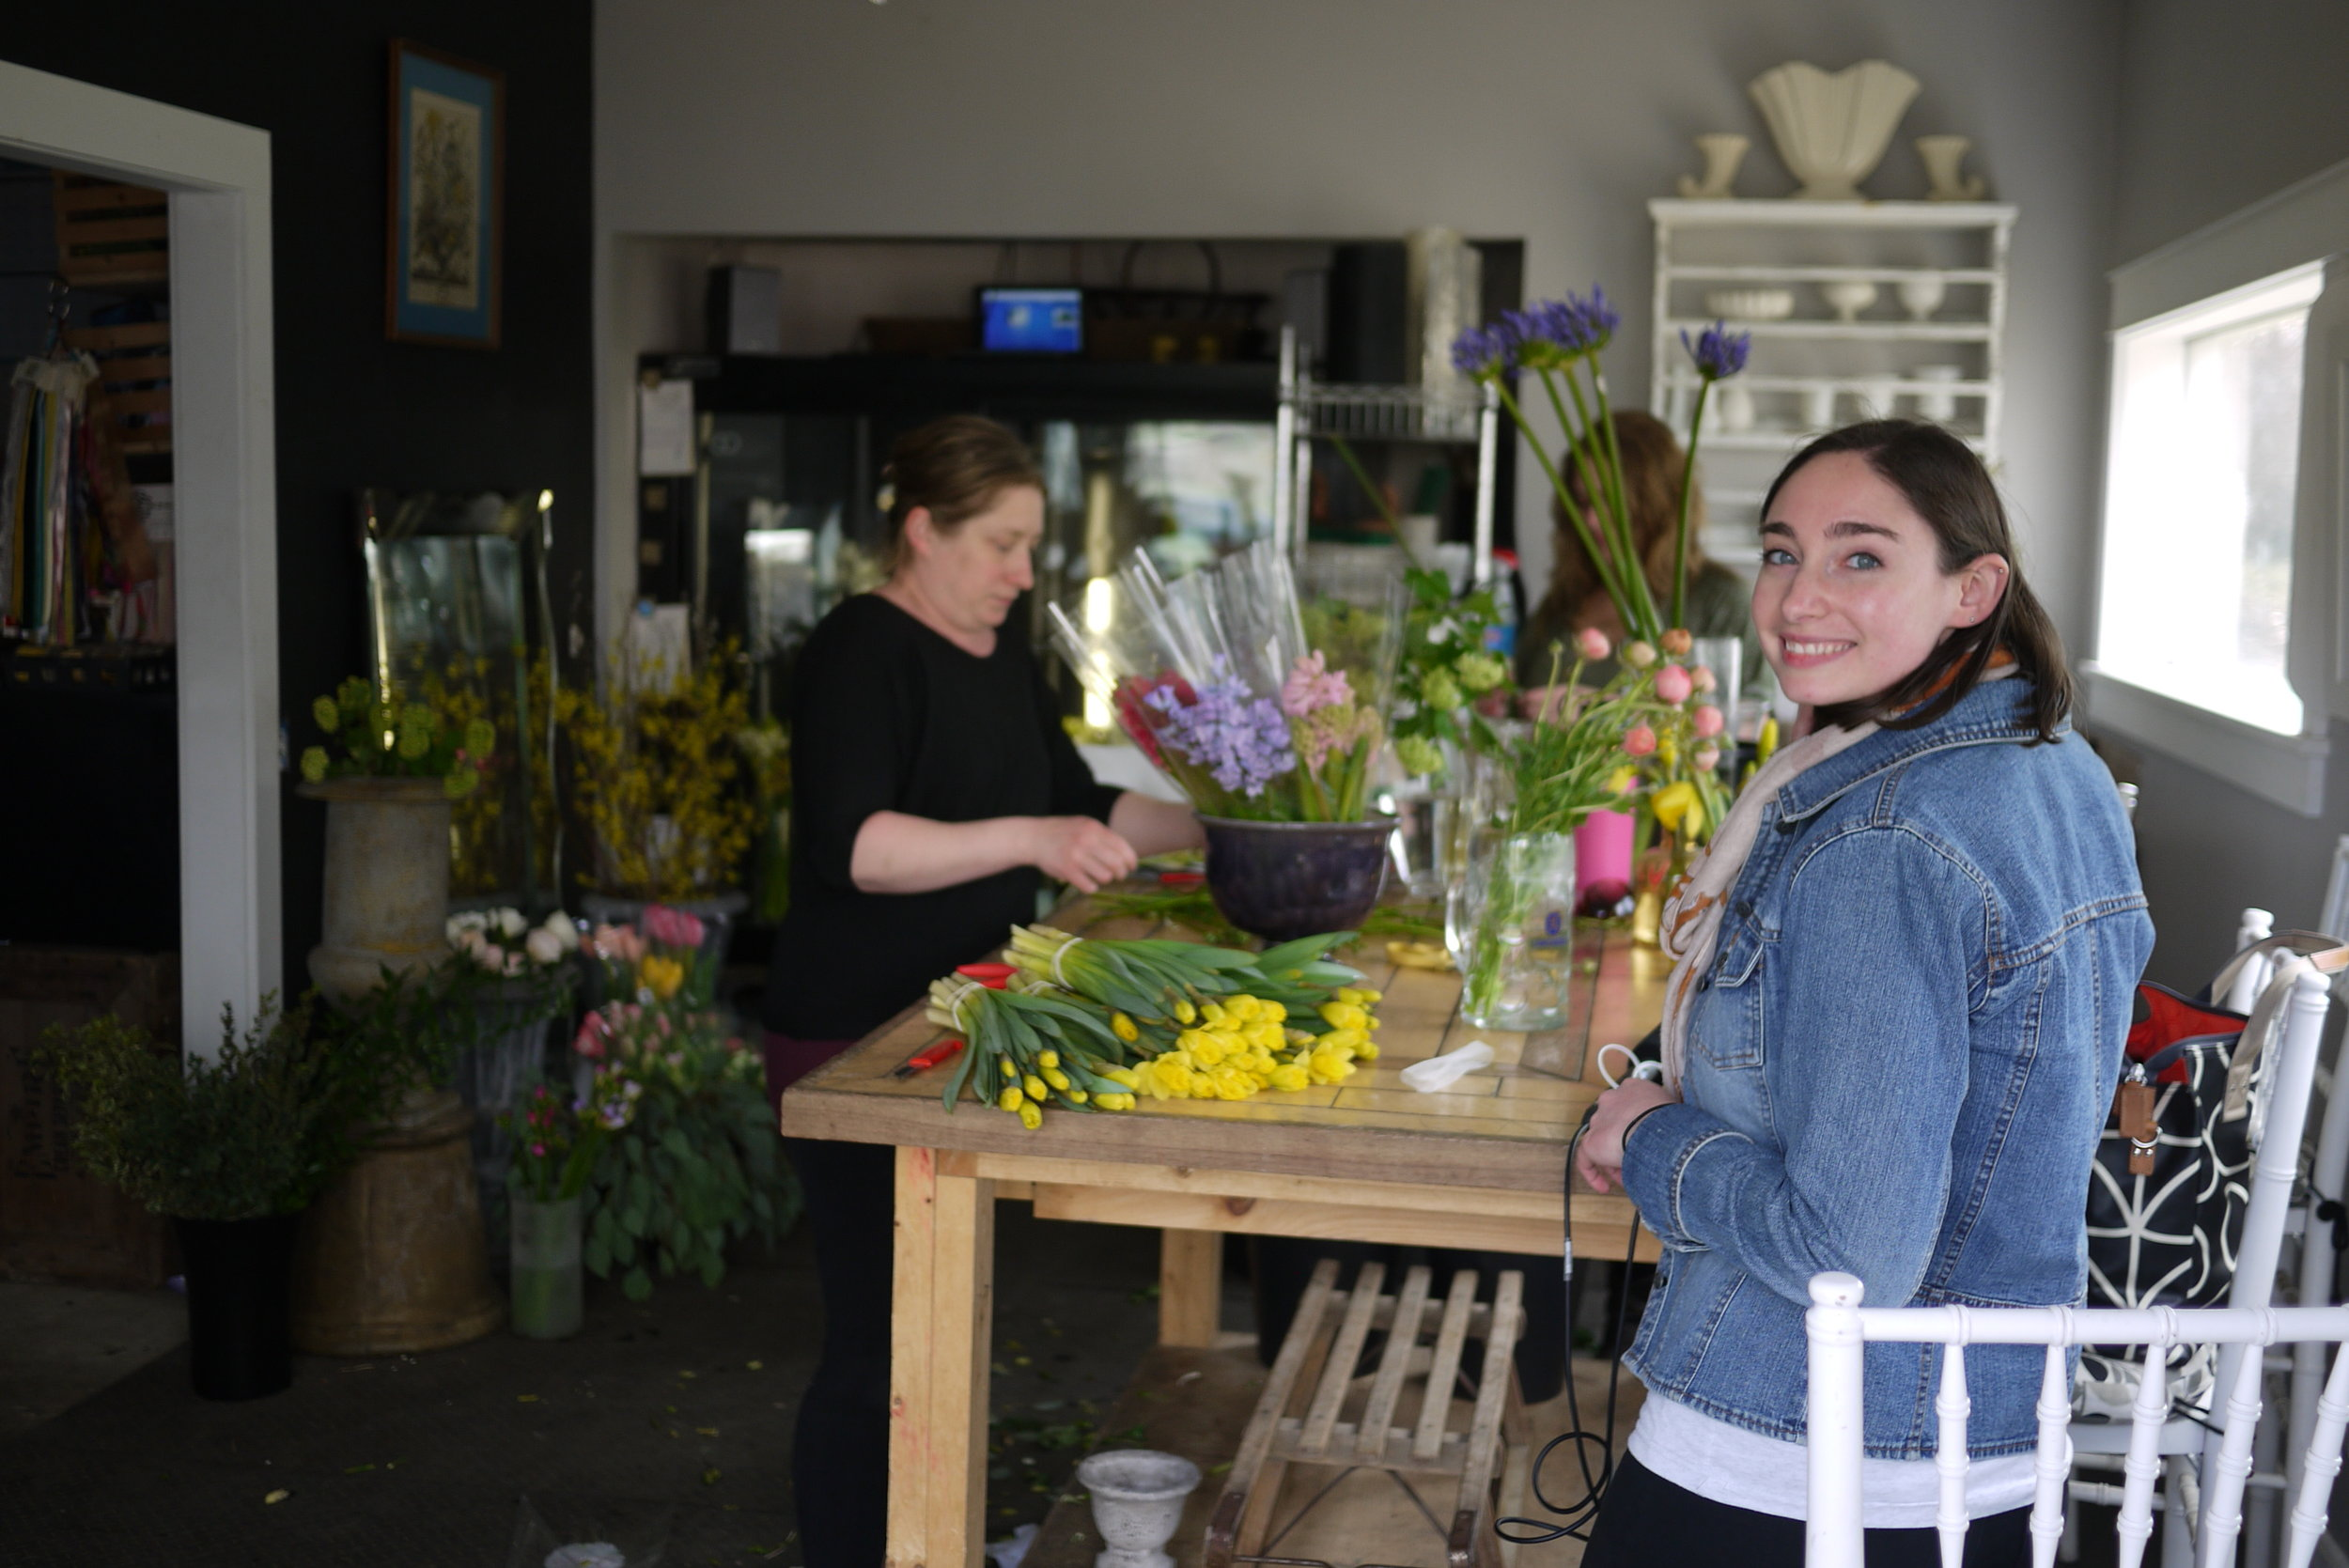 Producer Molly Donahue looks on as Emily & Emma work on a shipment of flowers.